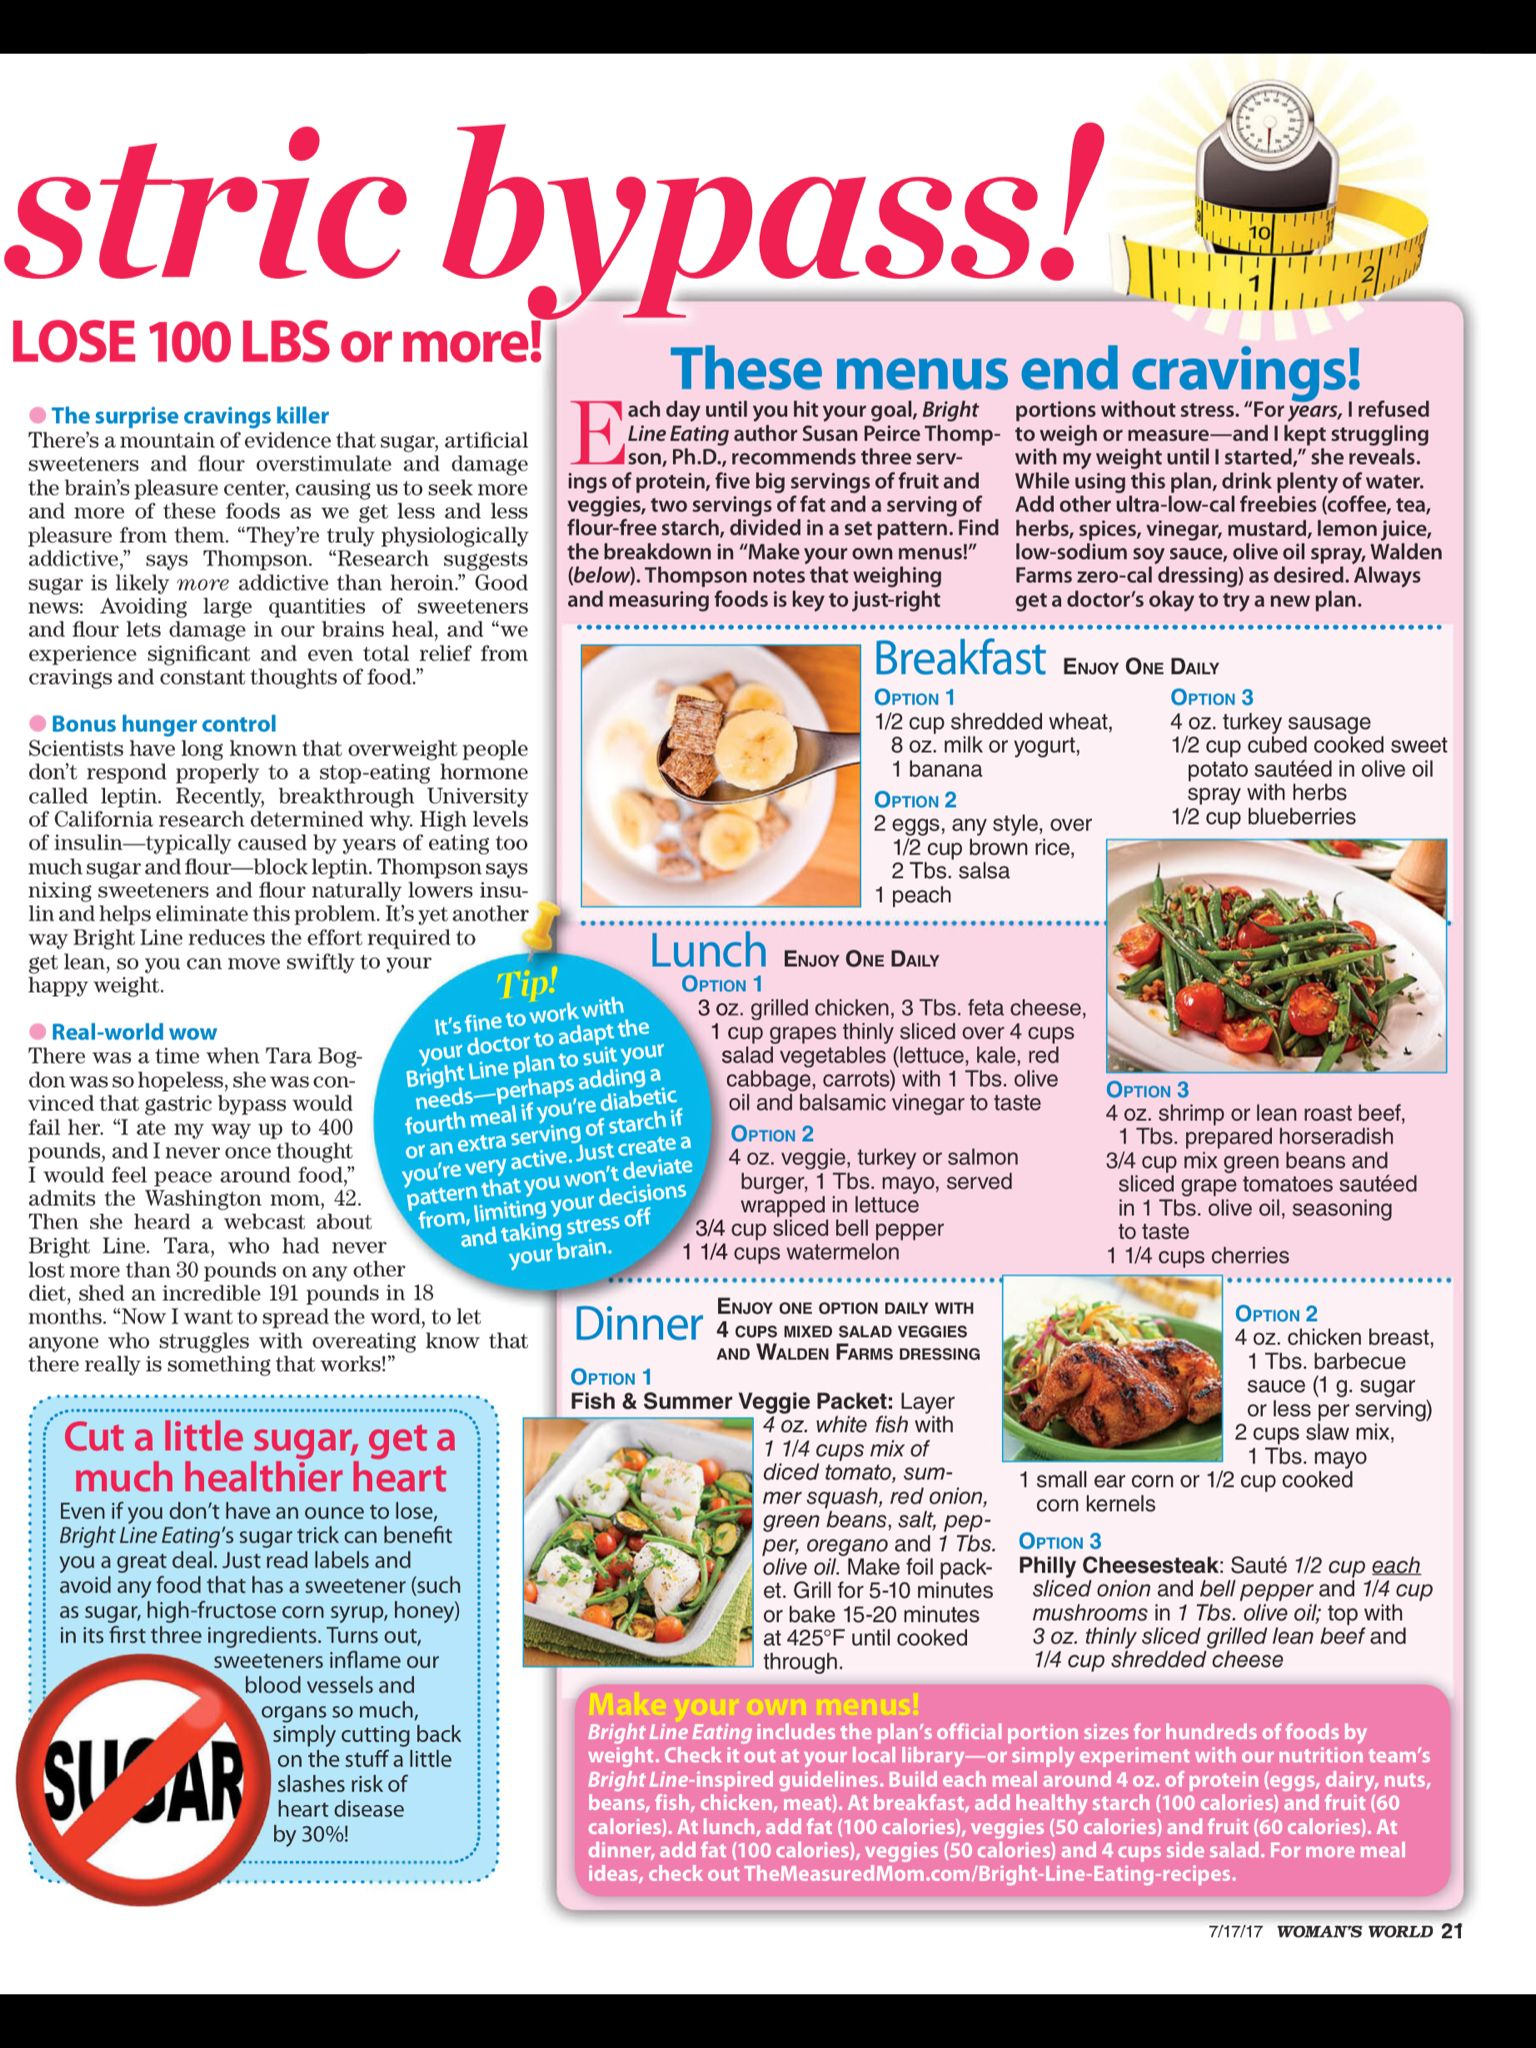 menu for better than gastric bypass diet